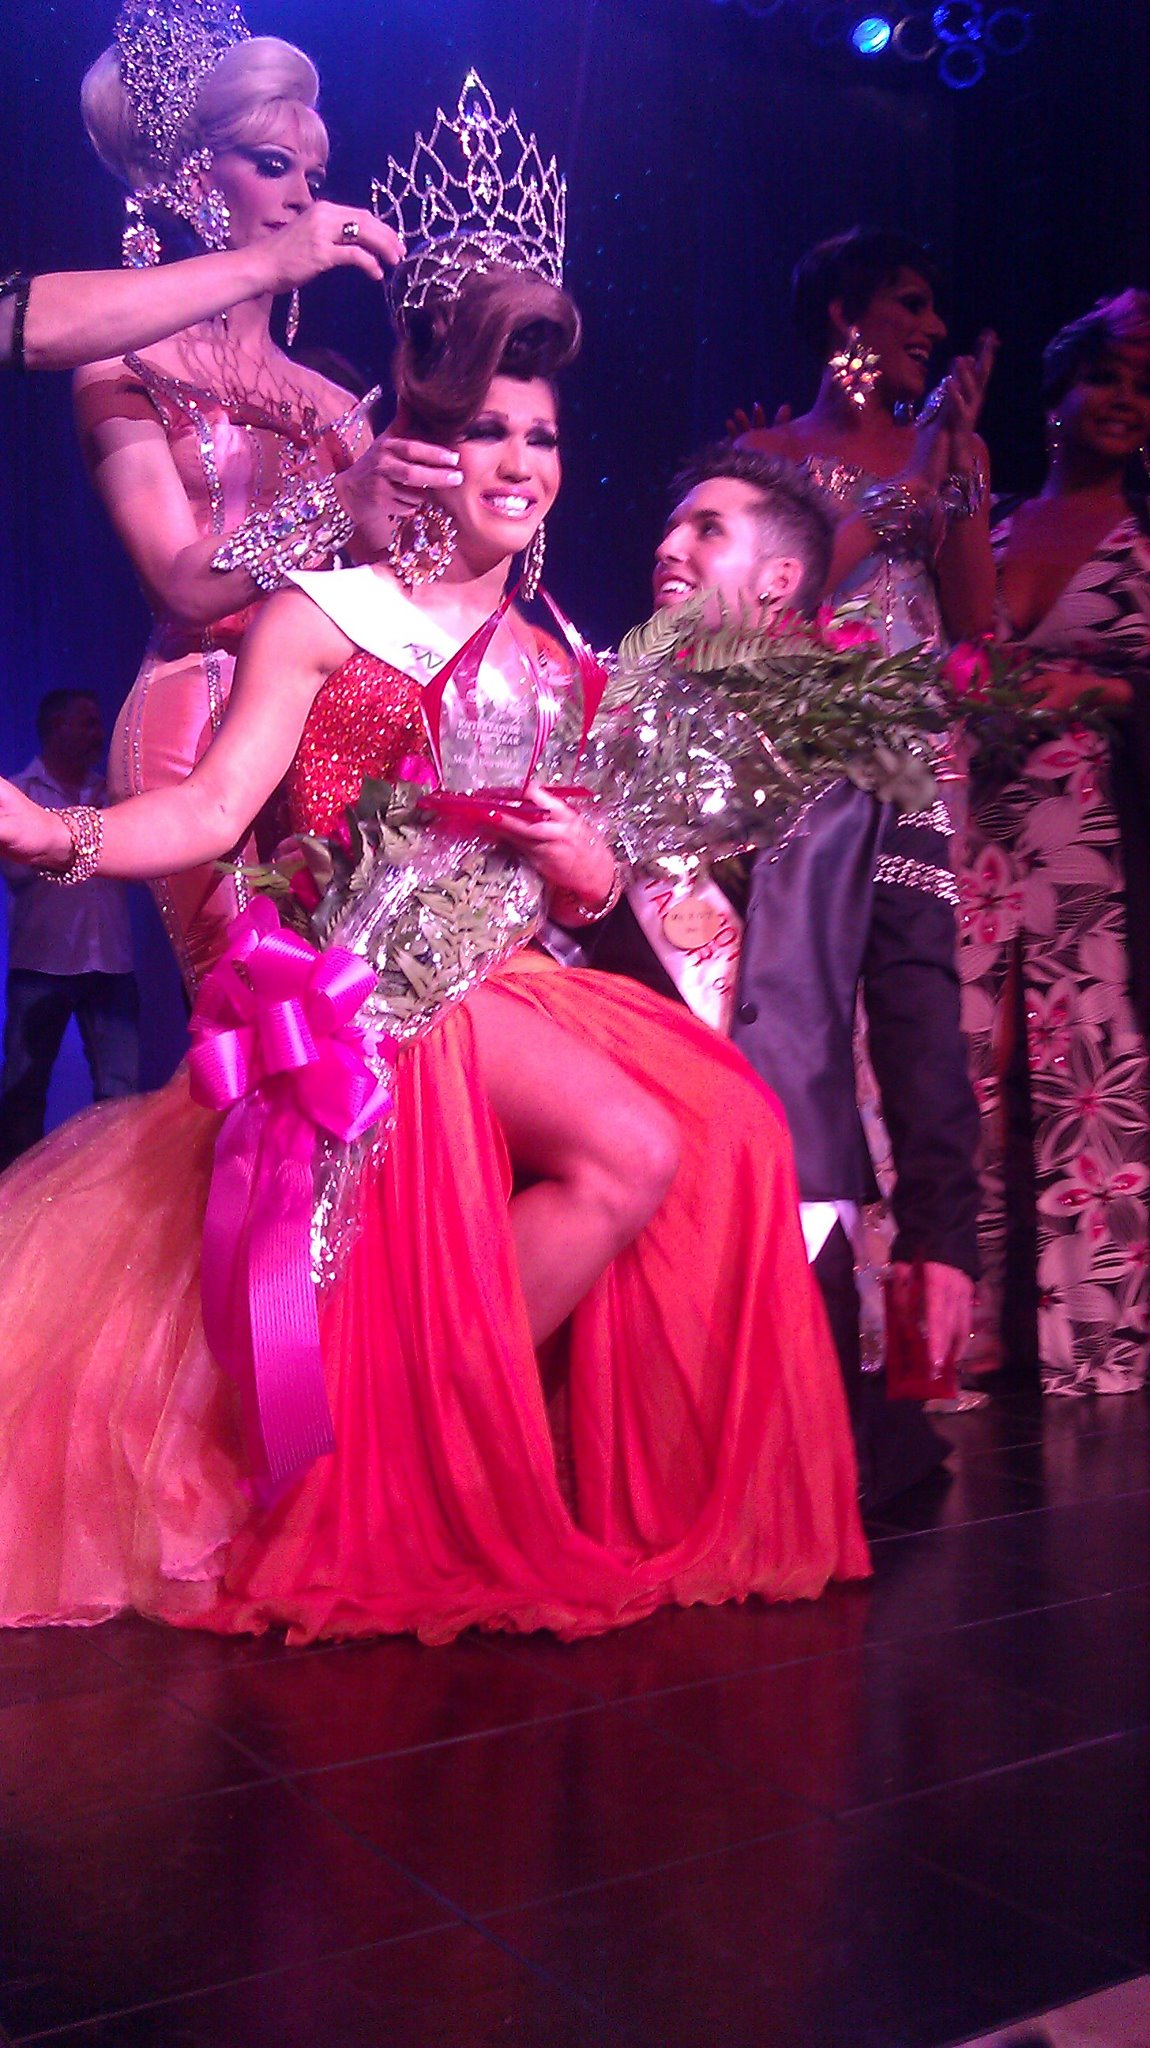 Aurora Sexton, on the knee of Mykul Jay Valentine, being crowned National Entertainer of the Year, F.I. 2011 by the outgoing Vanessa DeMornay.